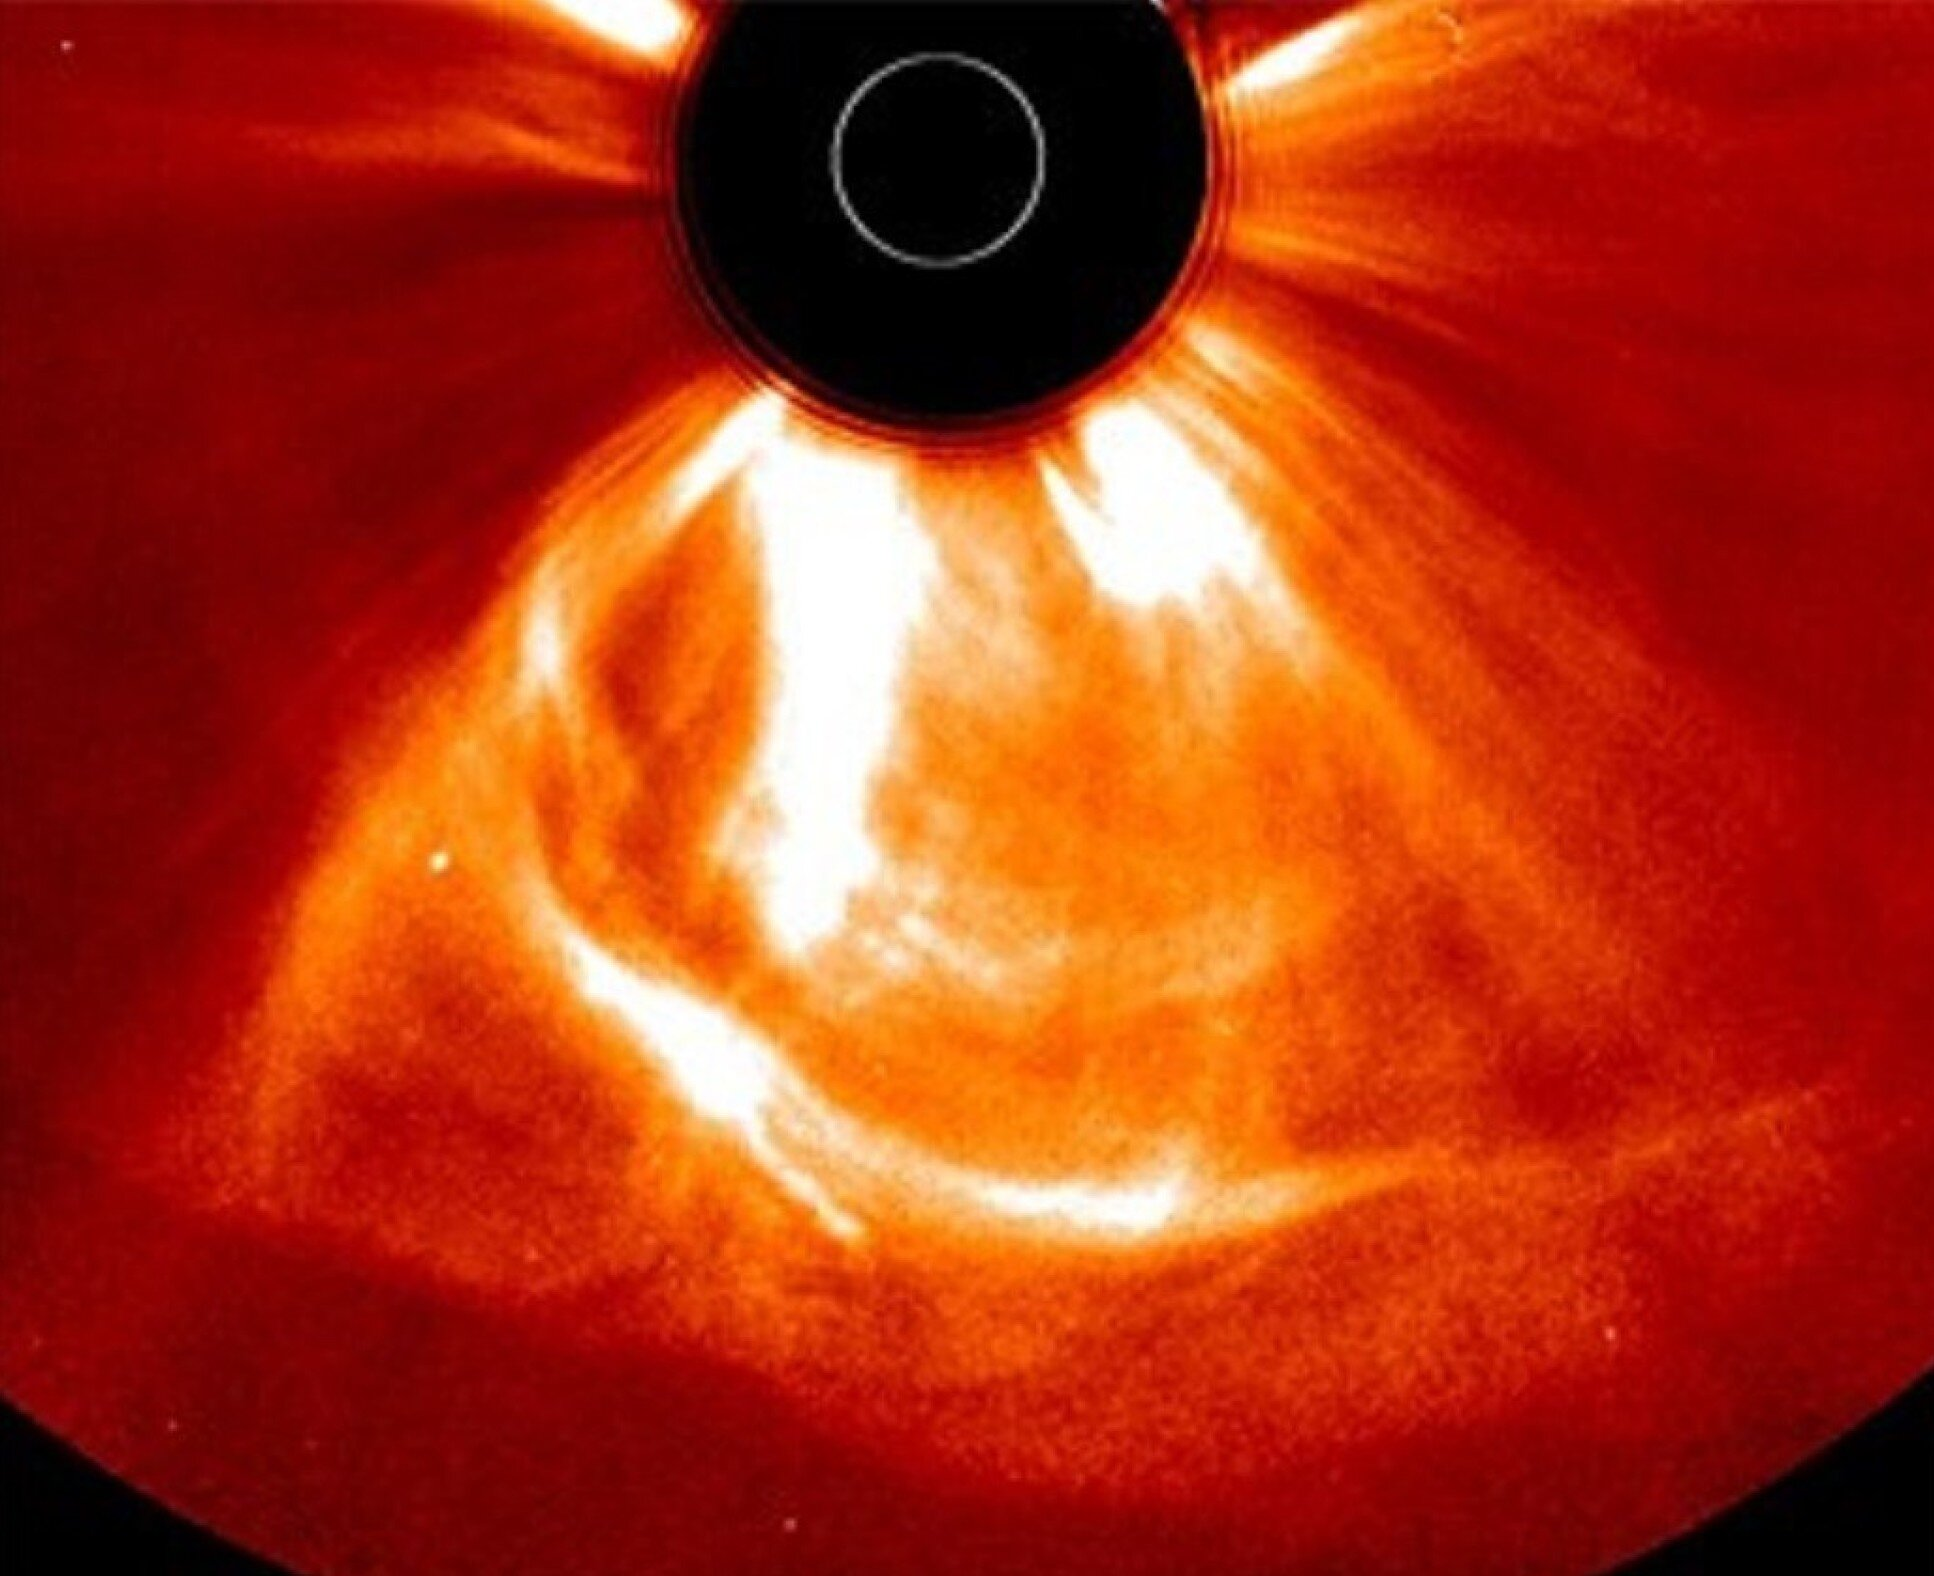 Solar storms could be more extreme if they 'slipstream' behind each other